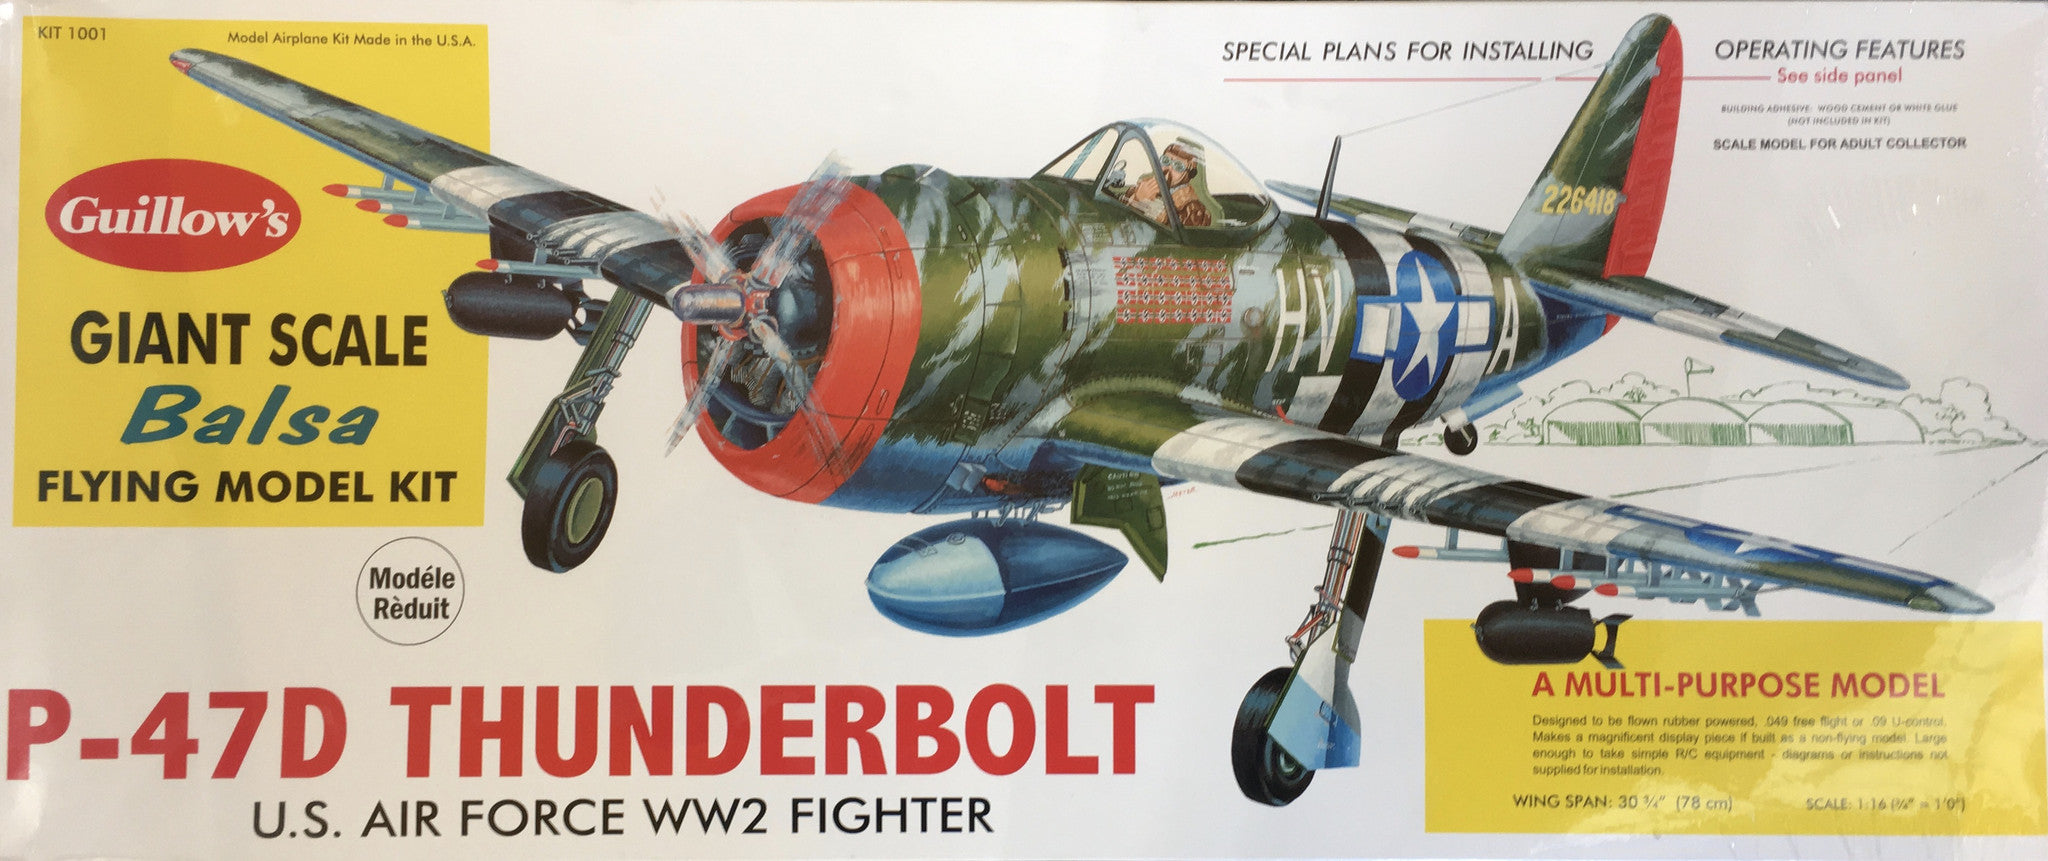 P-47 Thunderbolt Giant Scale Balsa Flying Model Kit